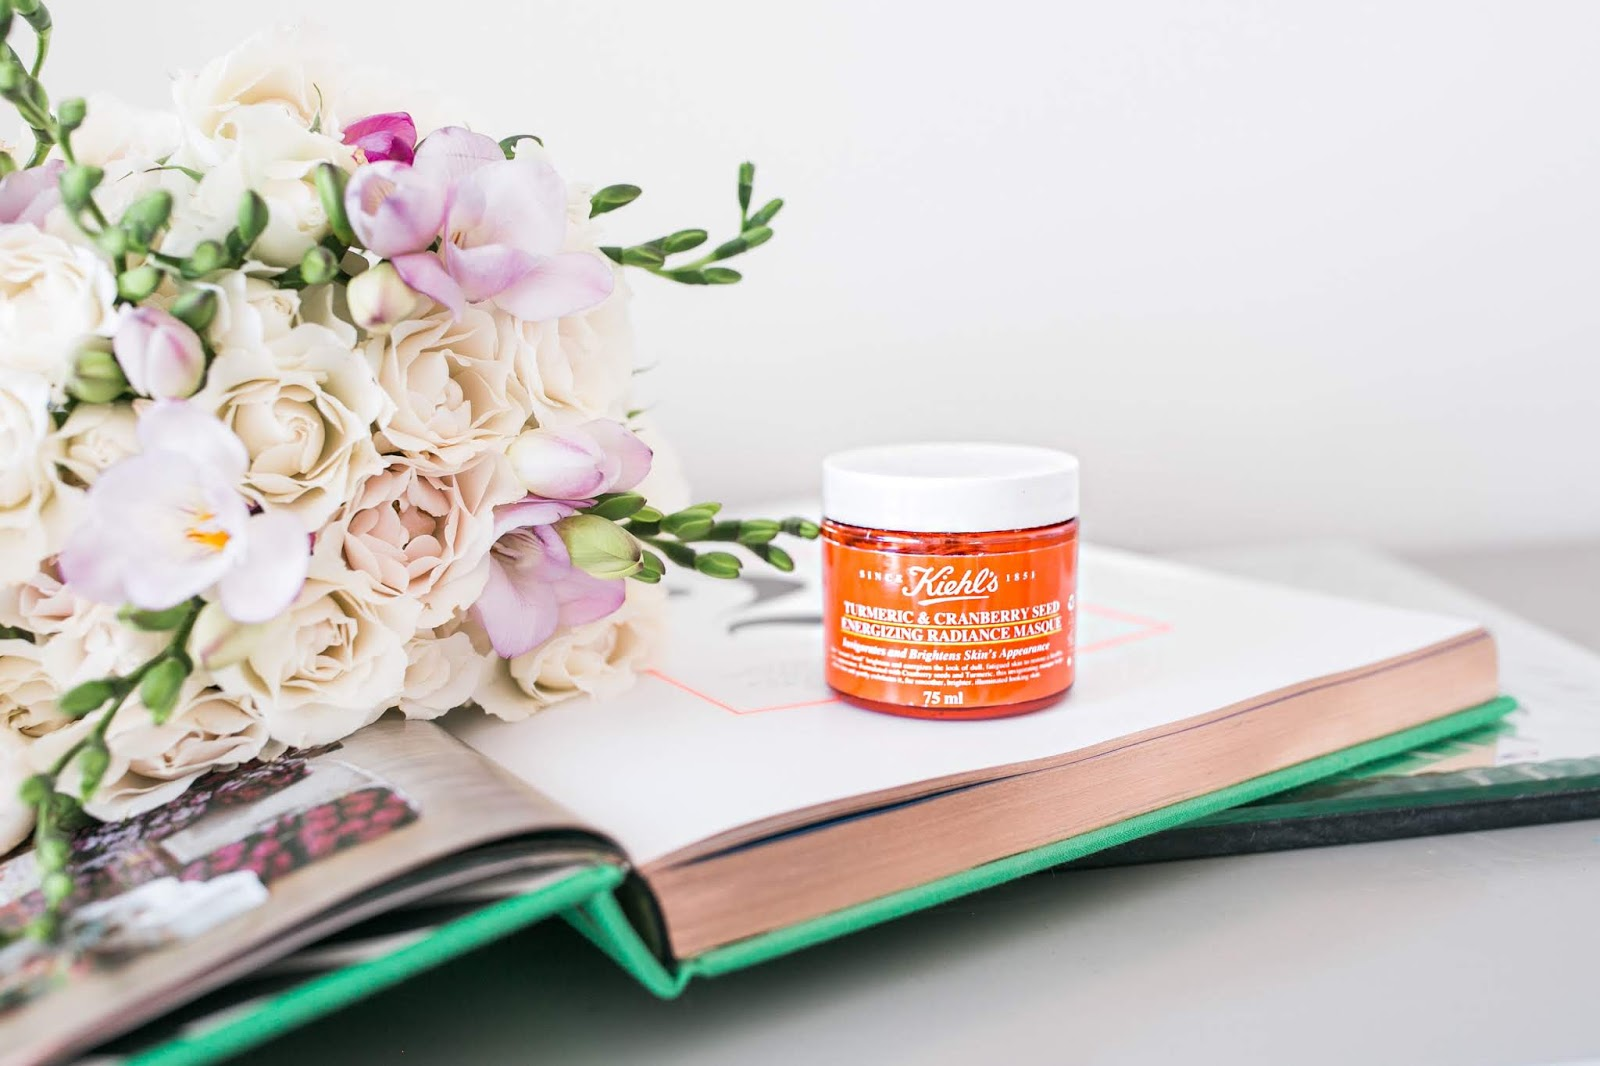 Kiehl's Turmeric and Cranberry Seed Energizing Radiance Face Mask Review